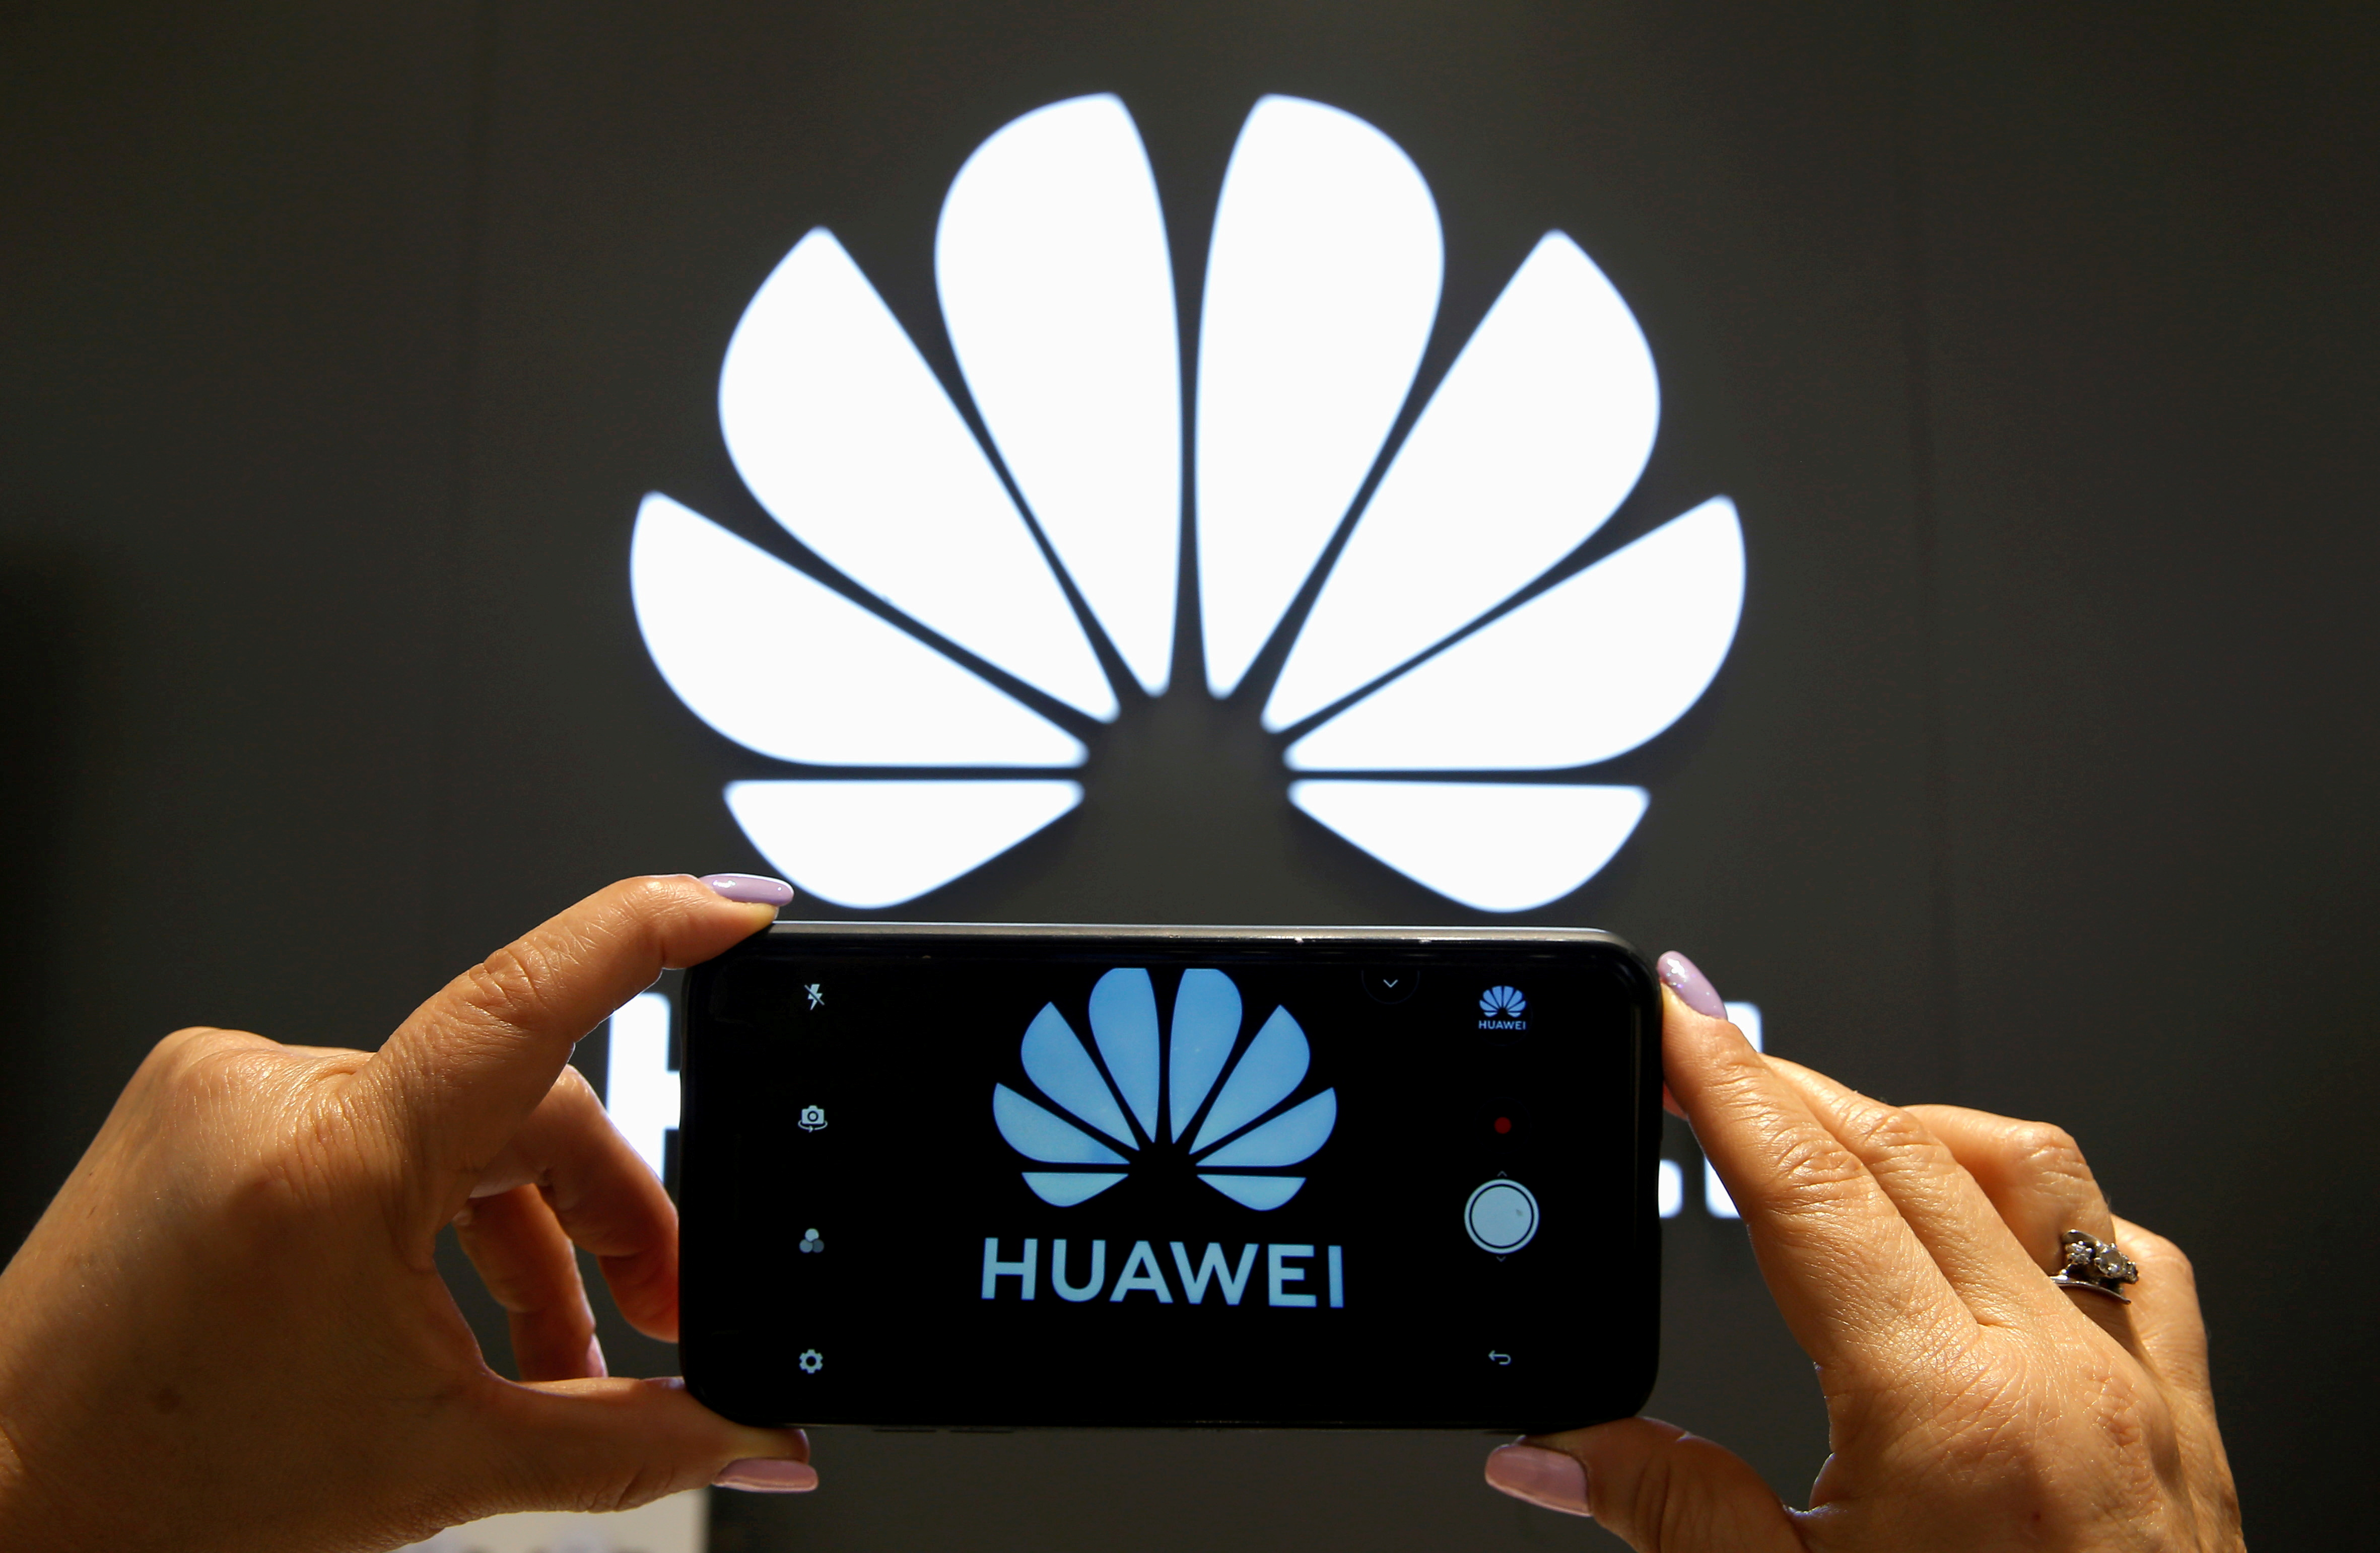 A Huawei logo is seen on a cell phone screen in their store at Vina del Mar, Chile. REUTERS/Rodrigo Garrido